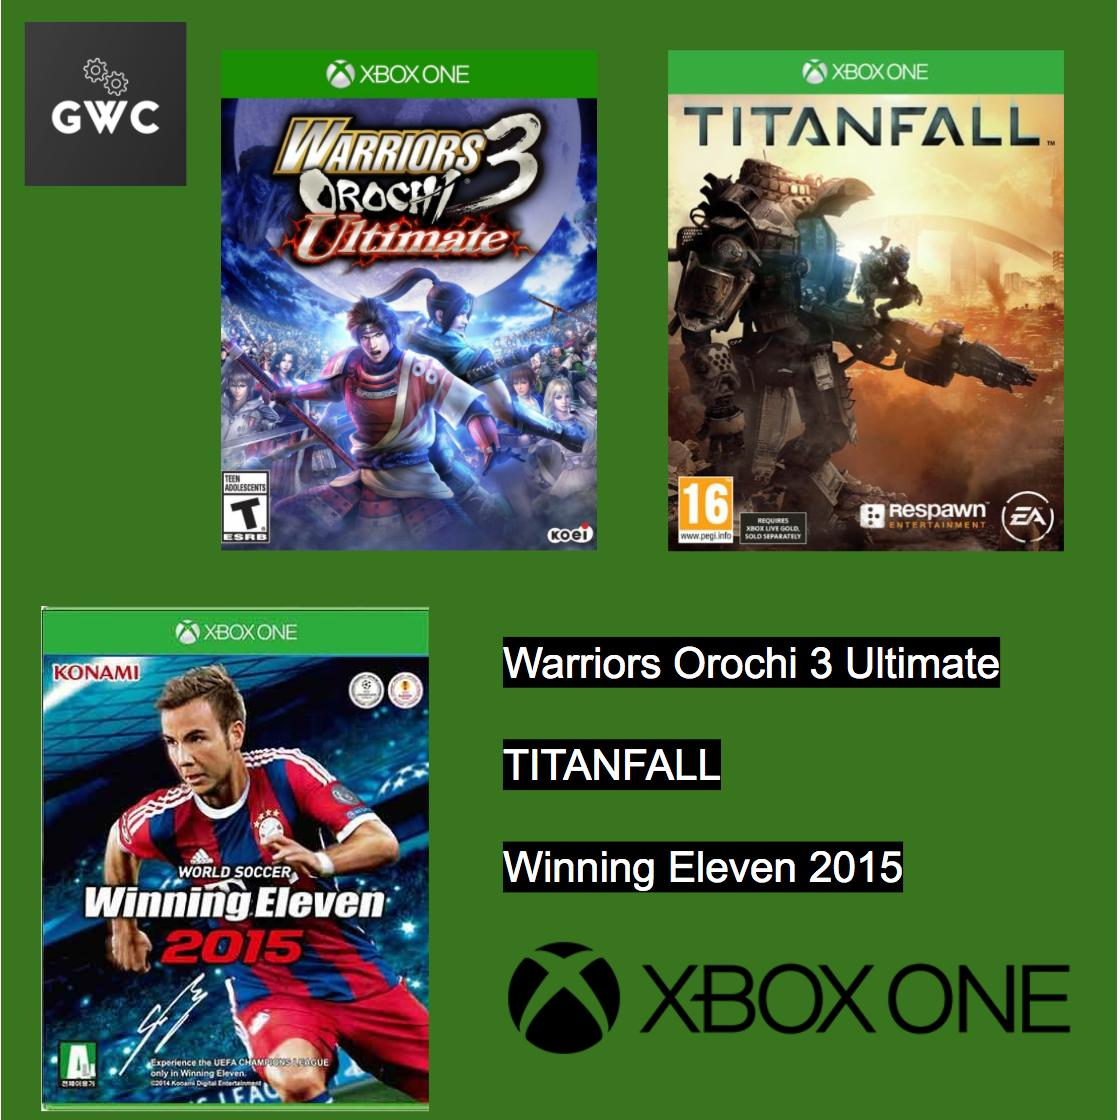 XBOX ONE Games x 3 (Warriors Orochi 3 Ultimate, Titanfall, Winning Eleven 2015)